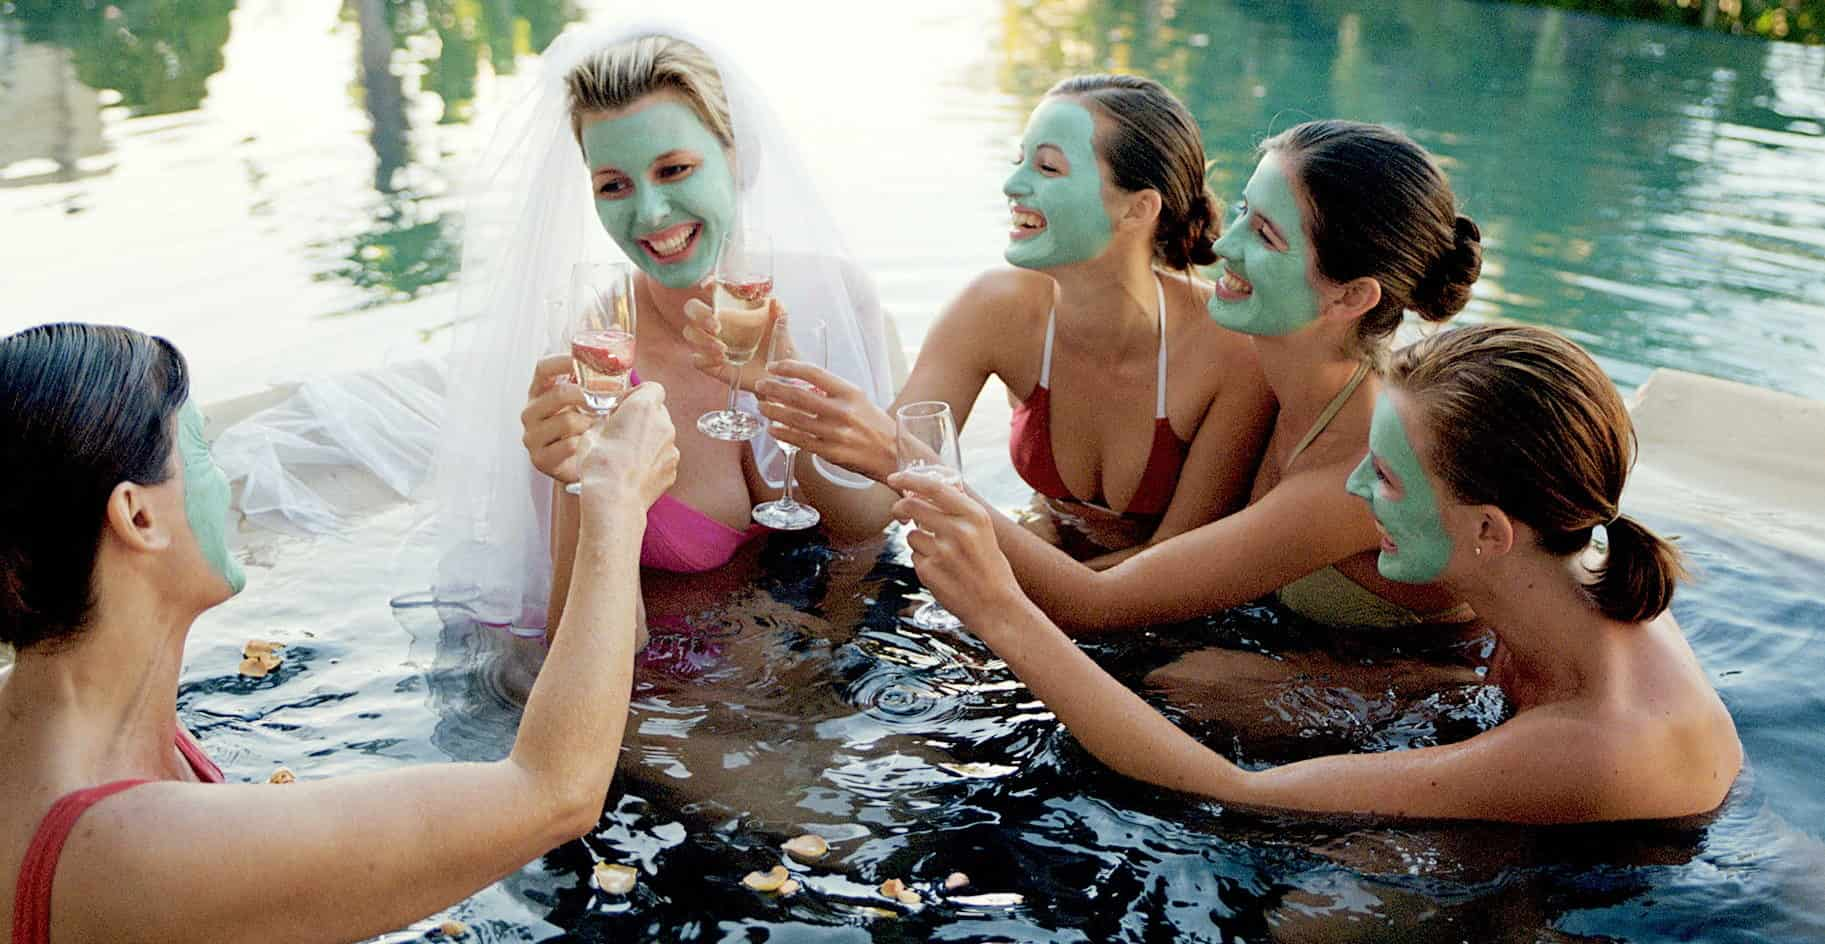 summer bachelorette party in the pool covered their faces with facial beauty masks